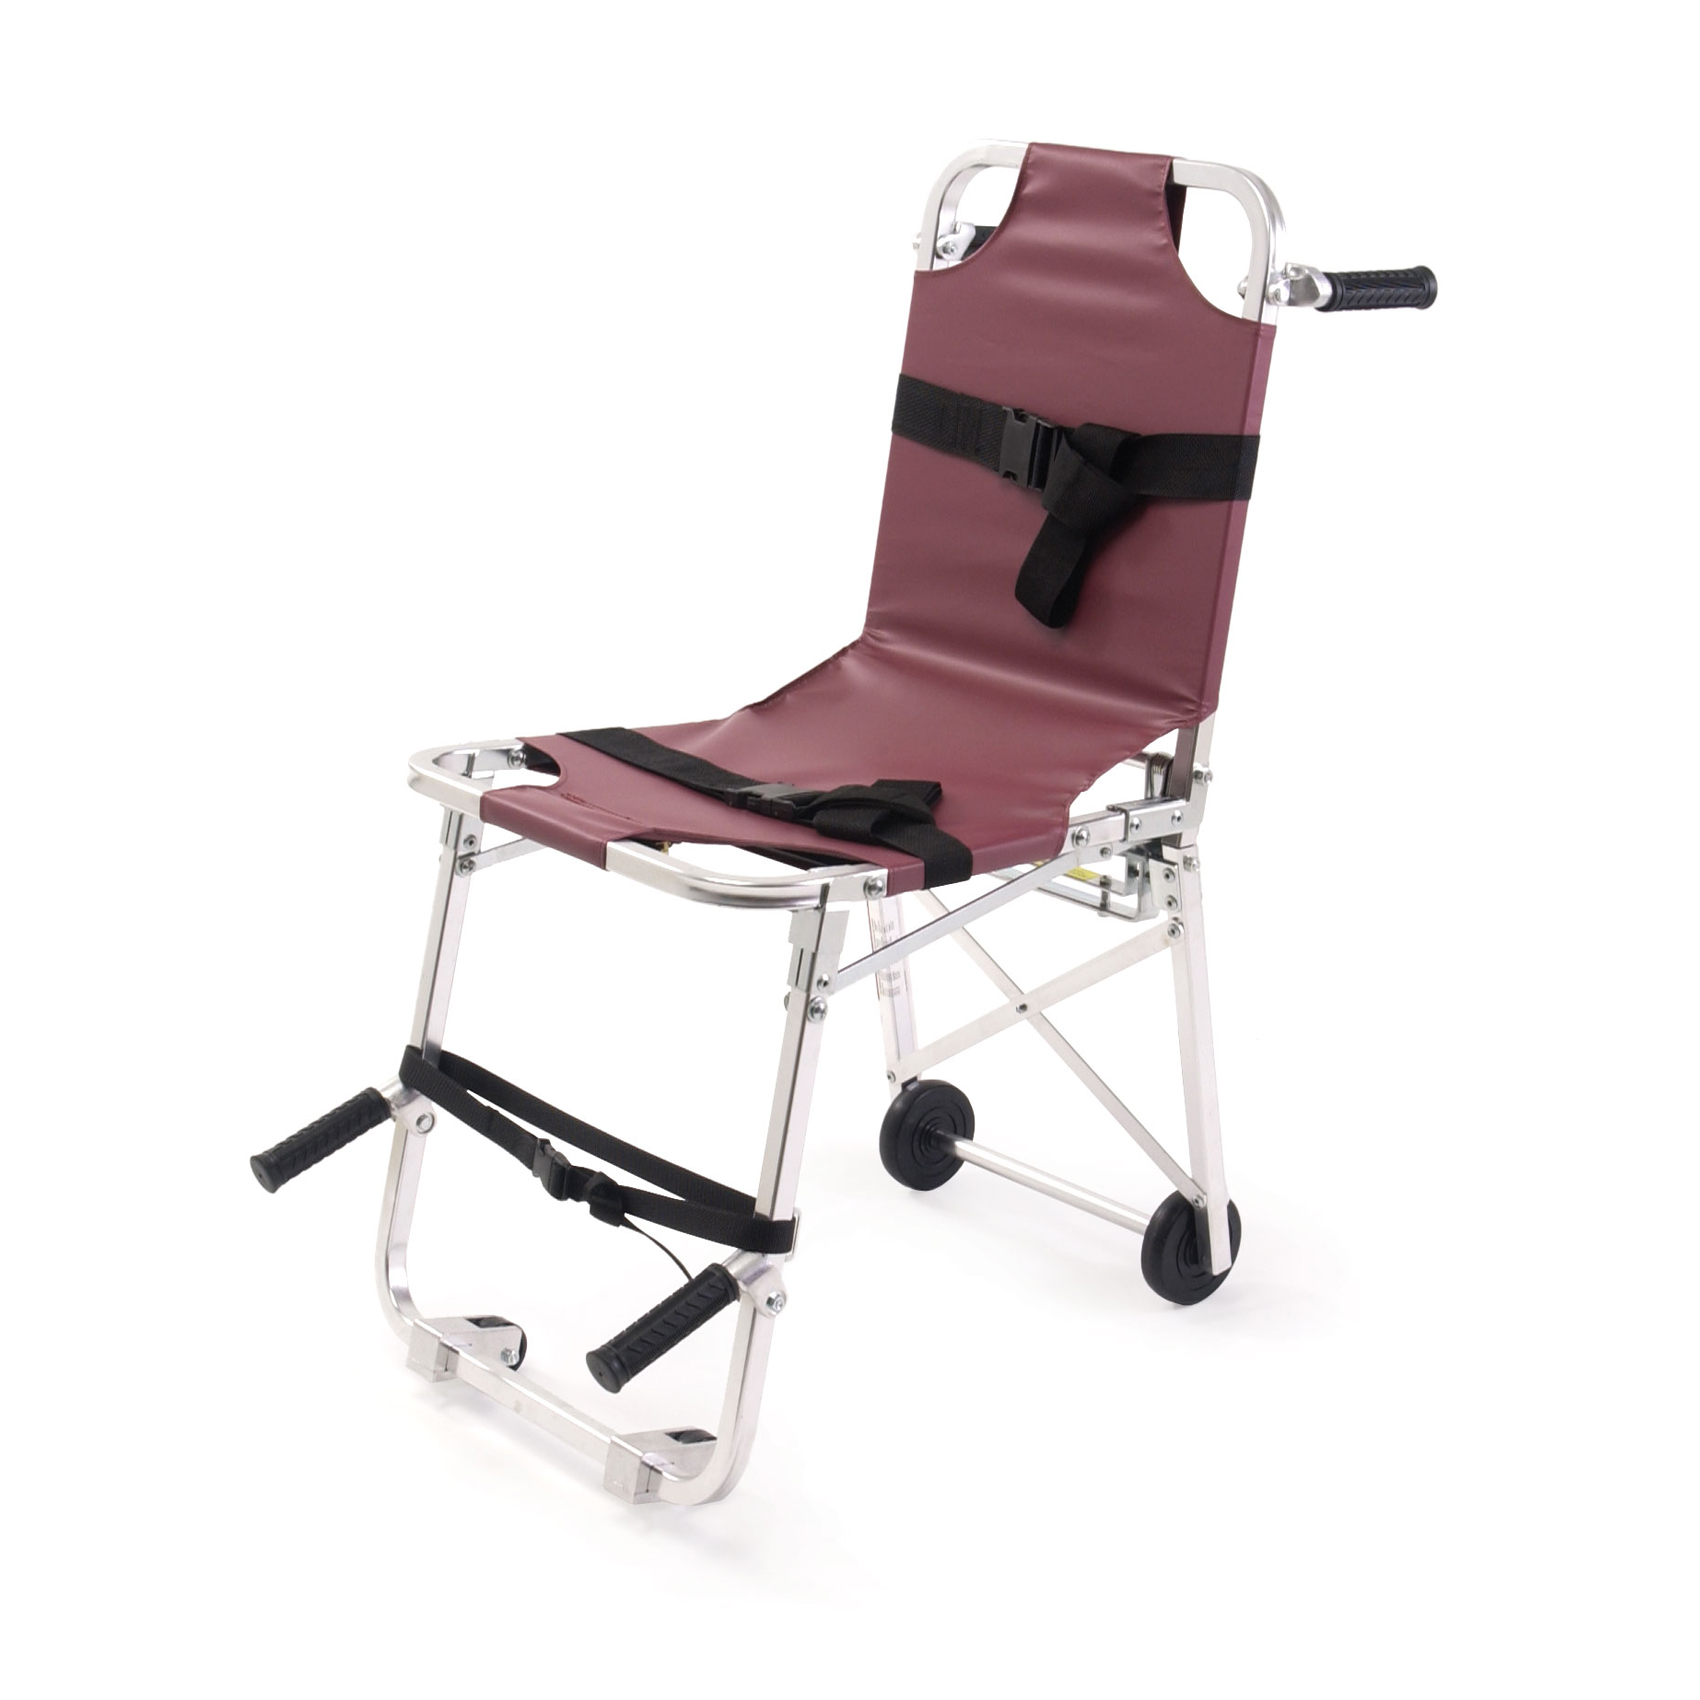 model 42 stair chair with vinyl cover – ferno canada